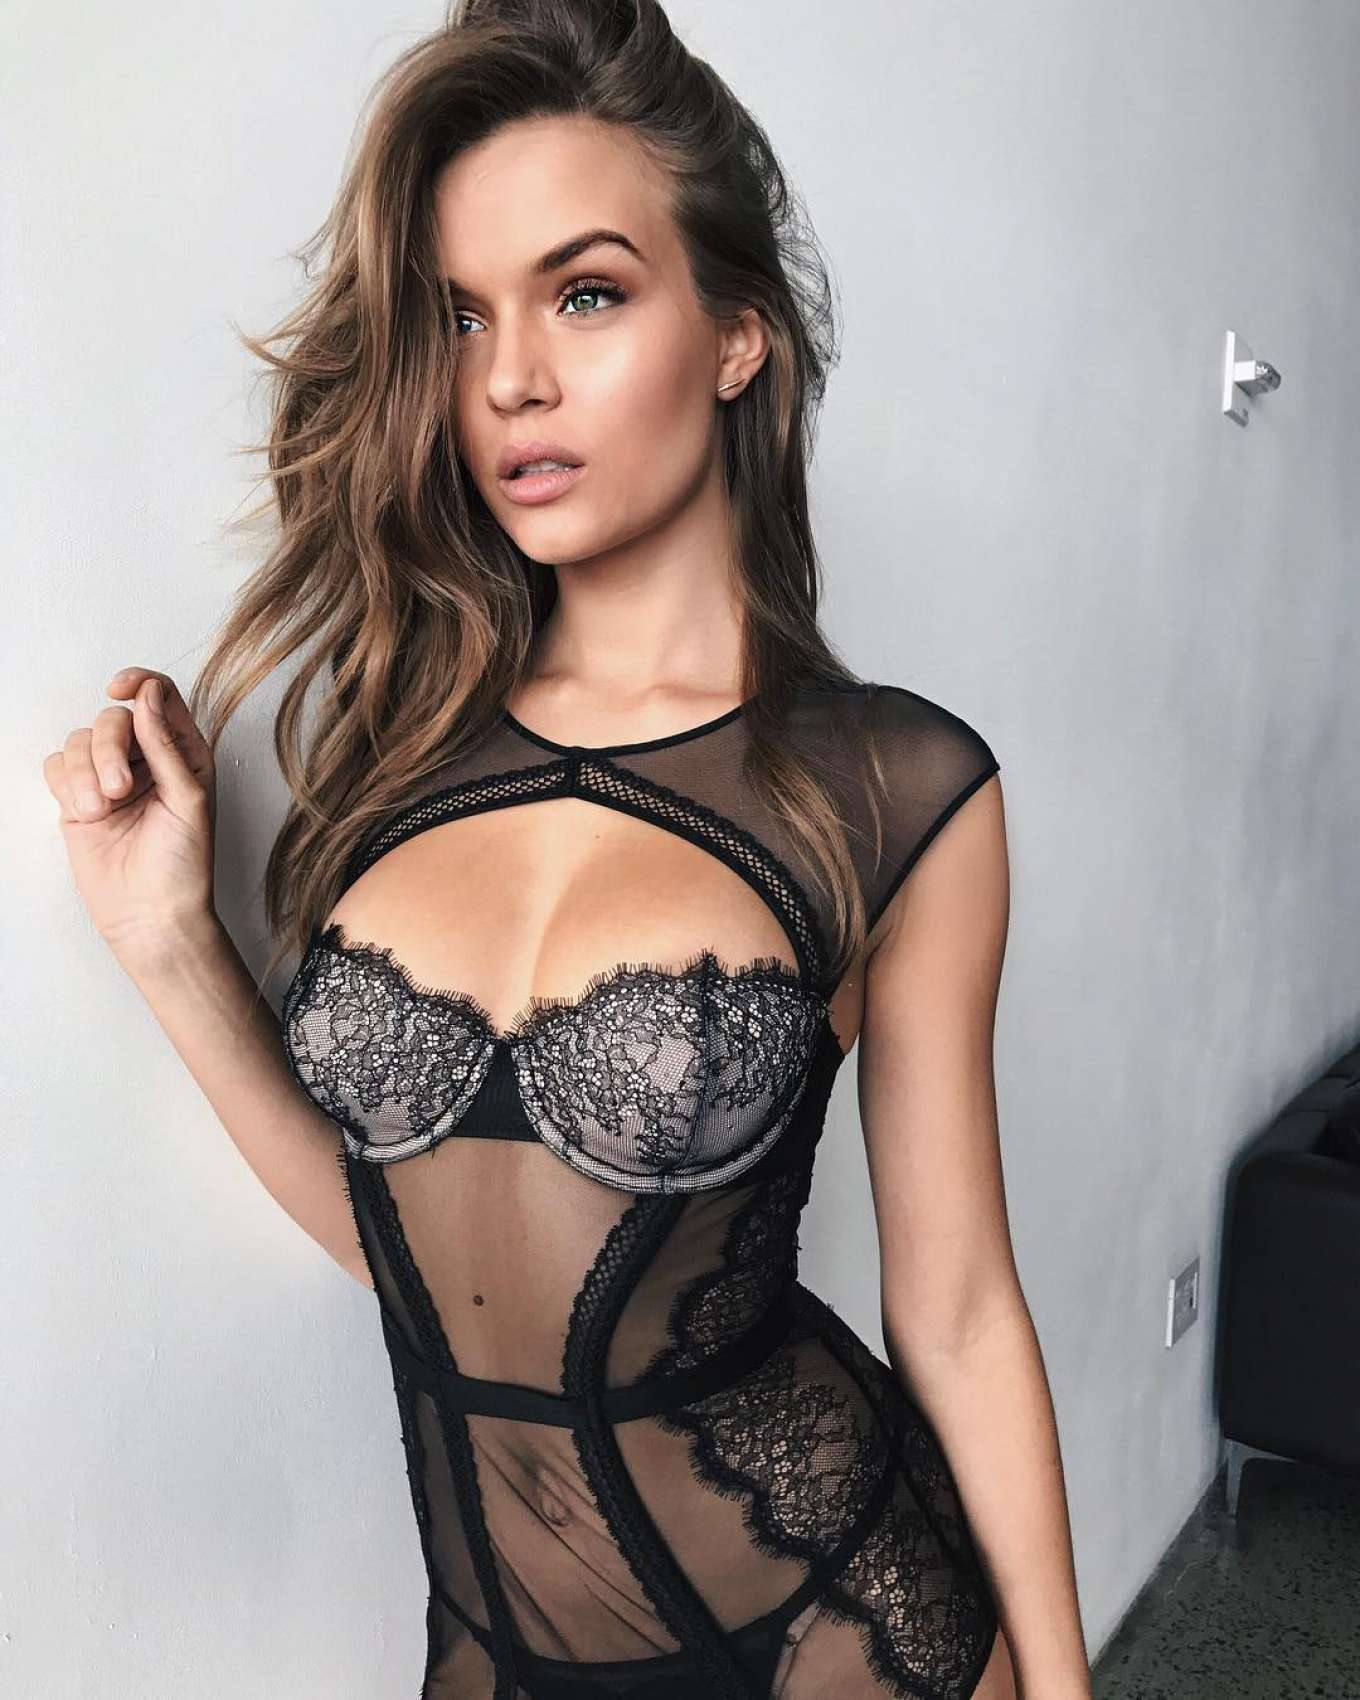 Pussy Hot Josephine Skriver naked photo 2017